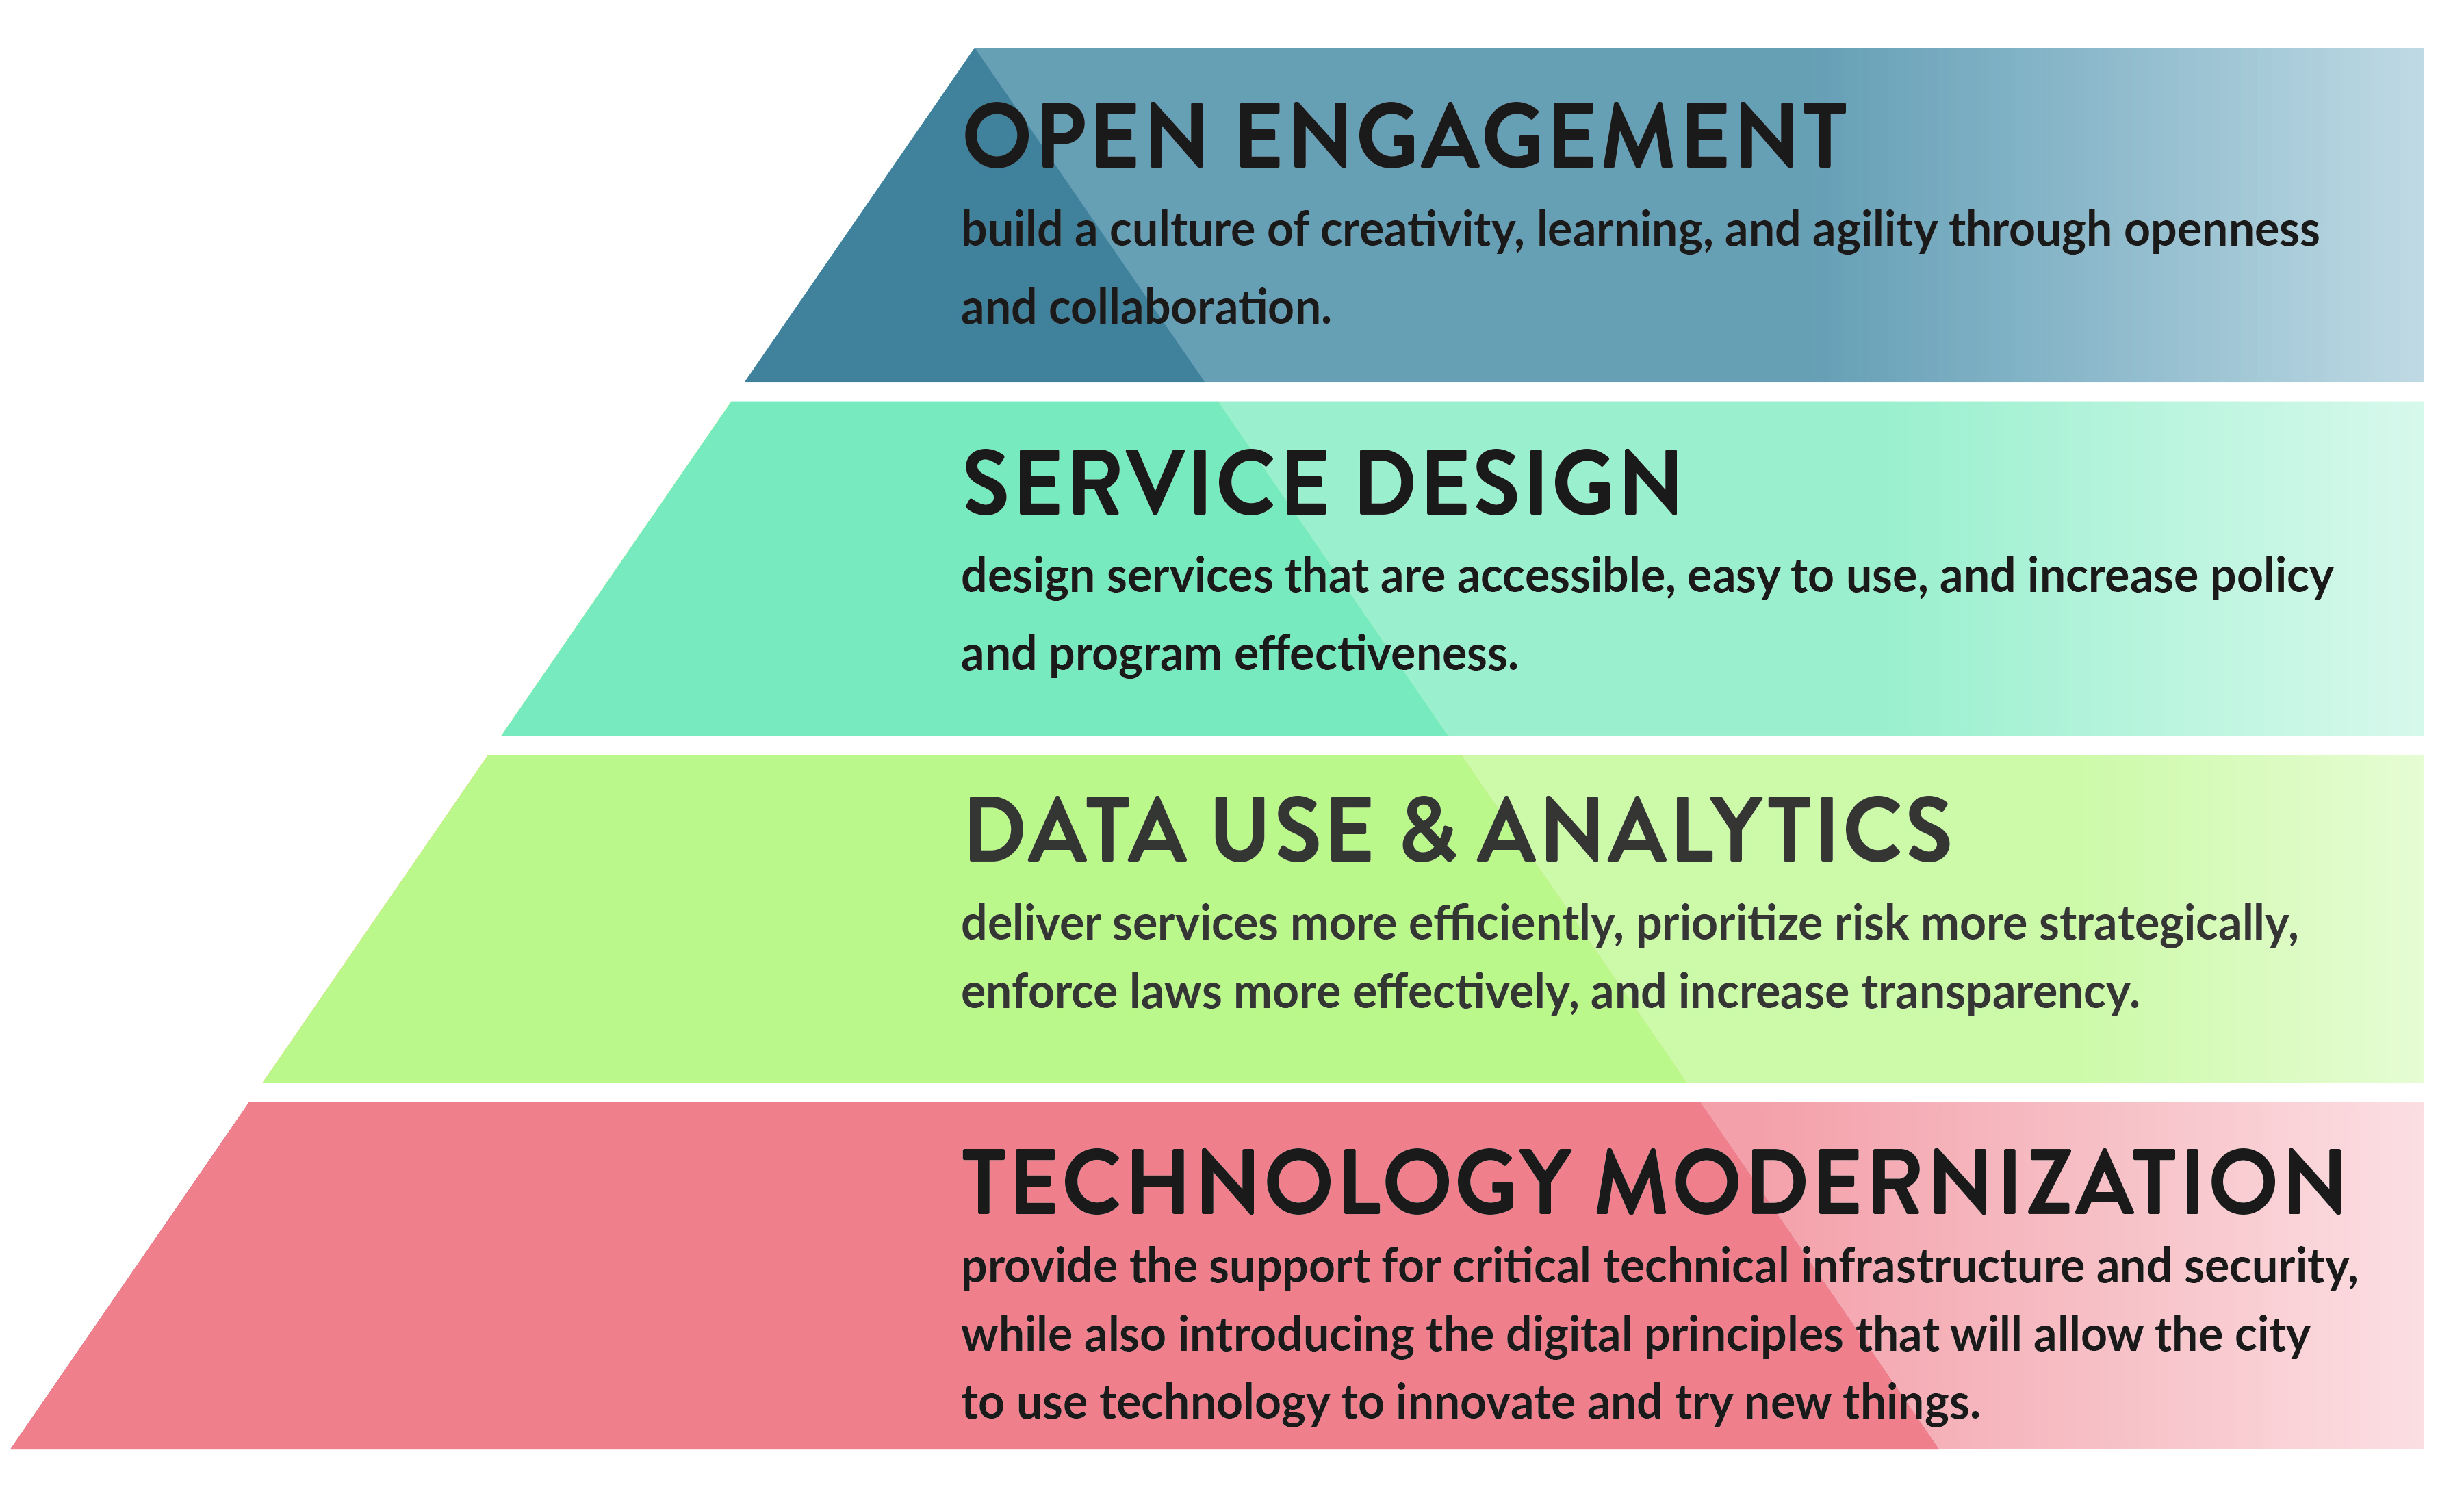 Open Engagement - Service Design - Data & Analytics - Technology Modernization